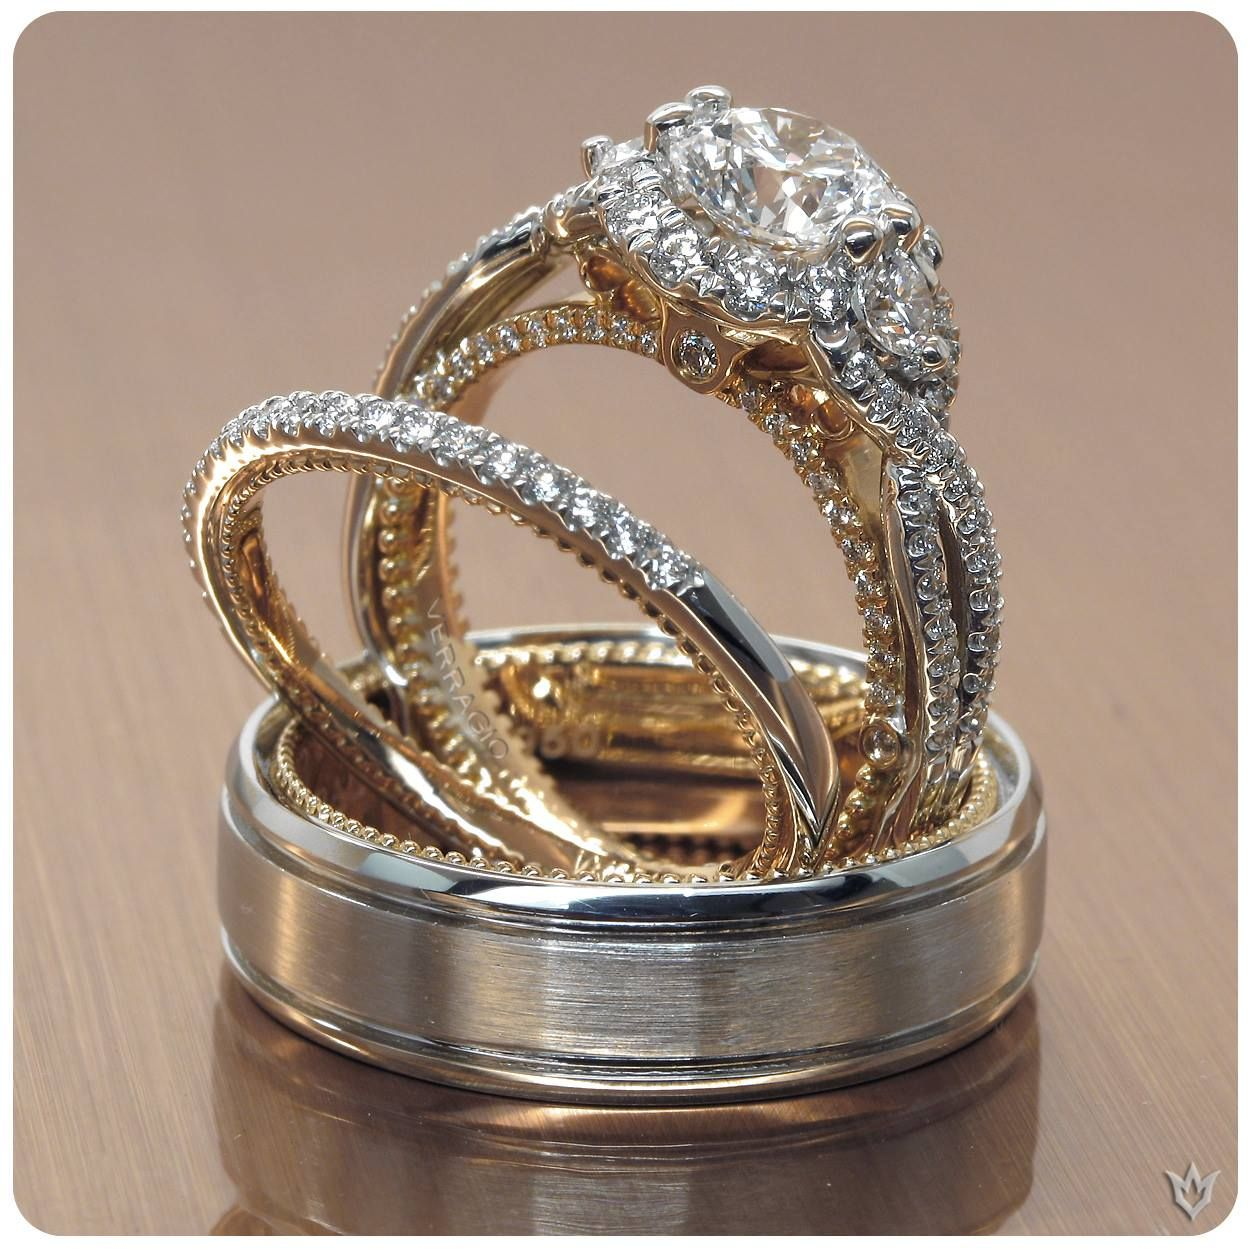 birmingham jewelry | verragio engagement rings | pinterest | ring